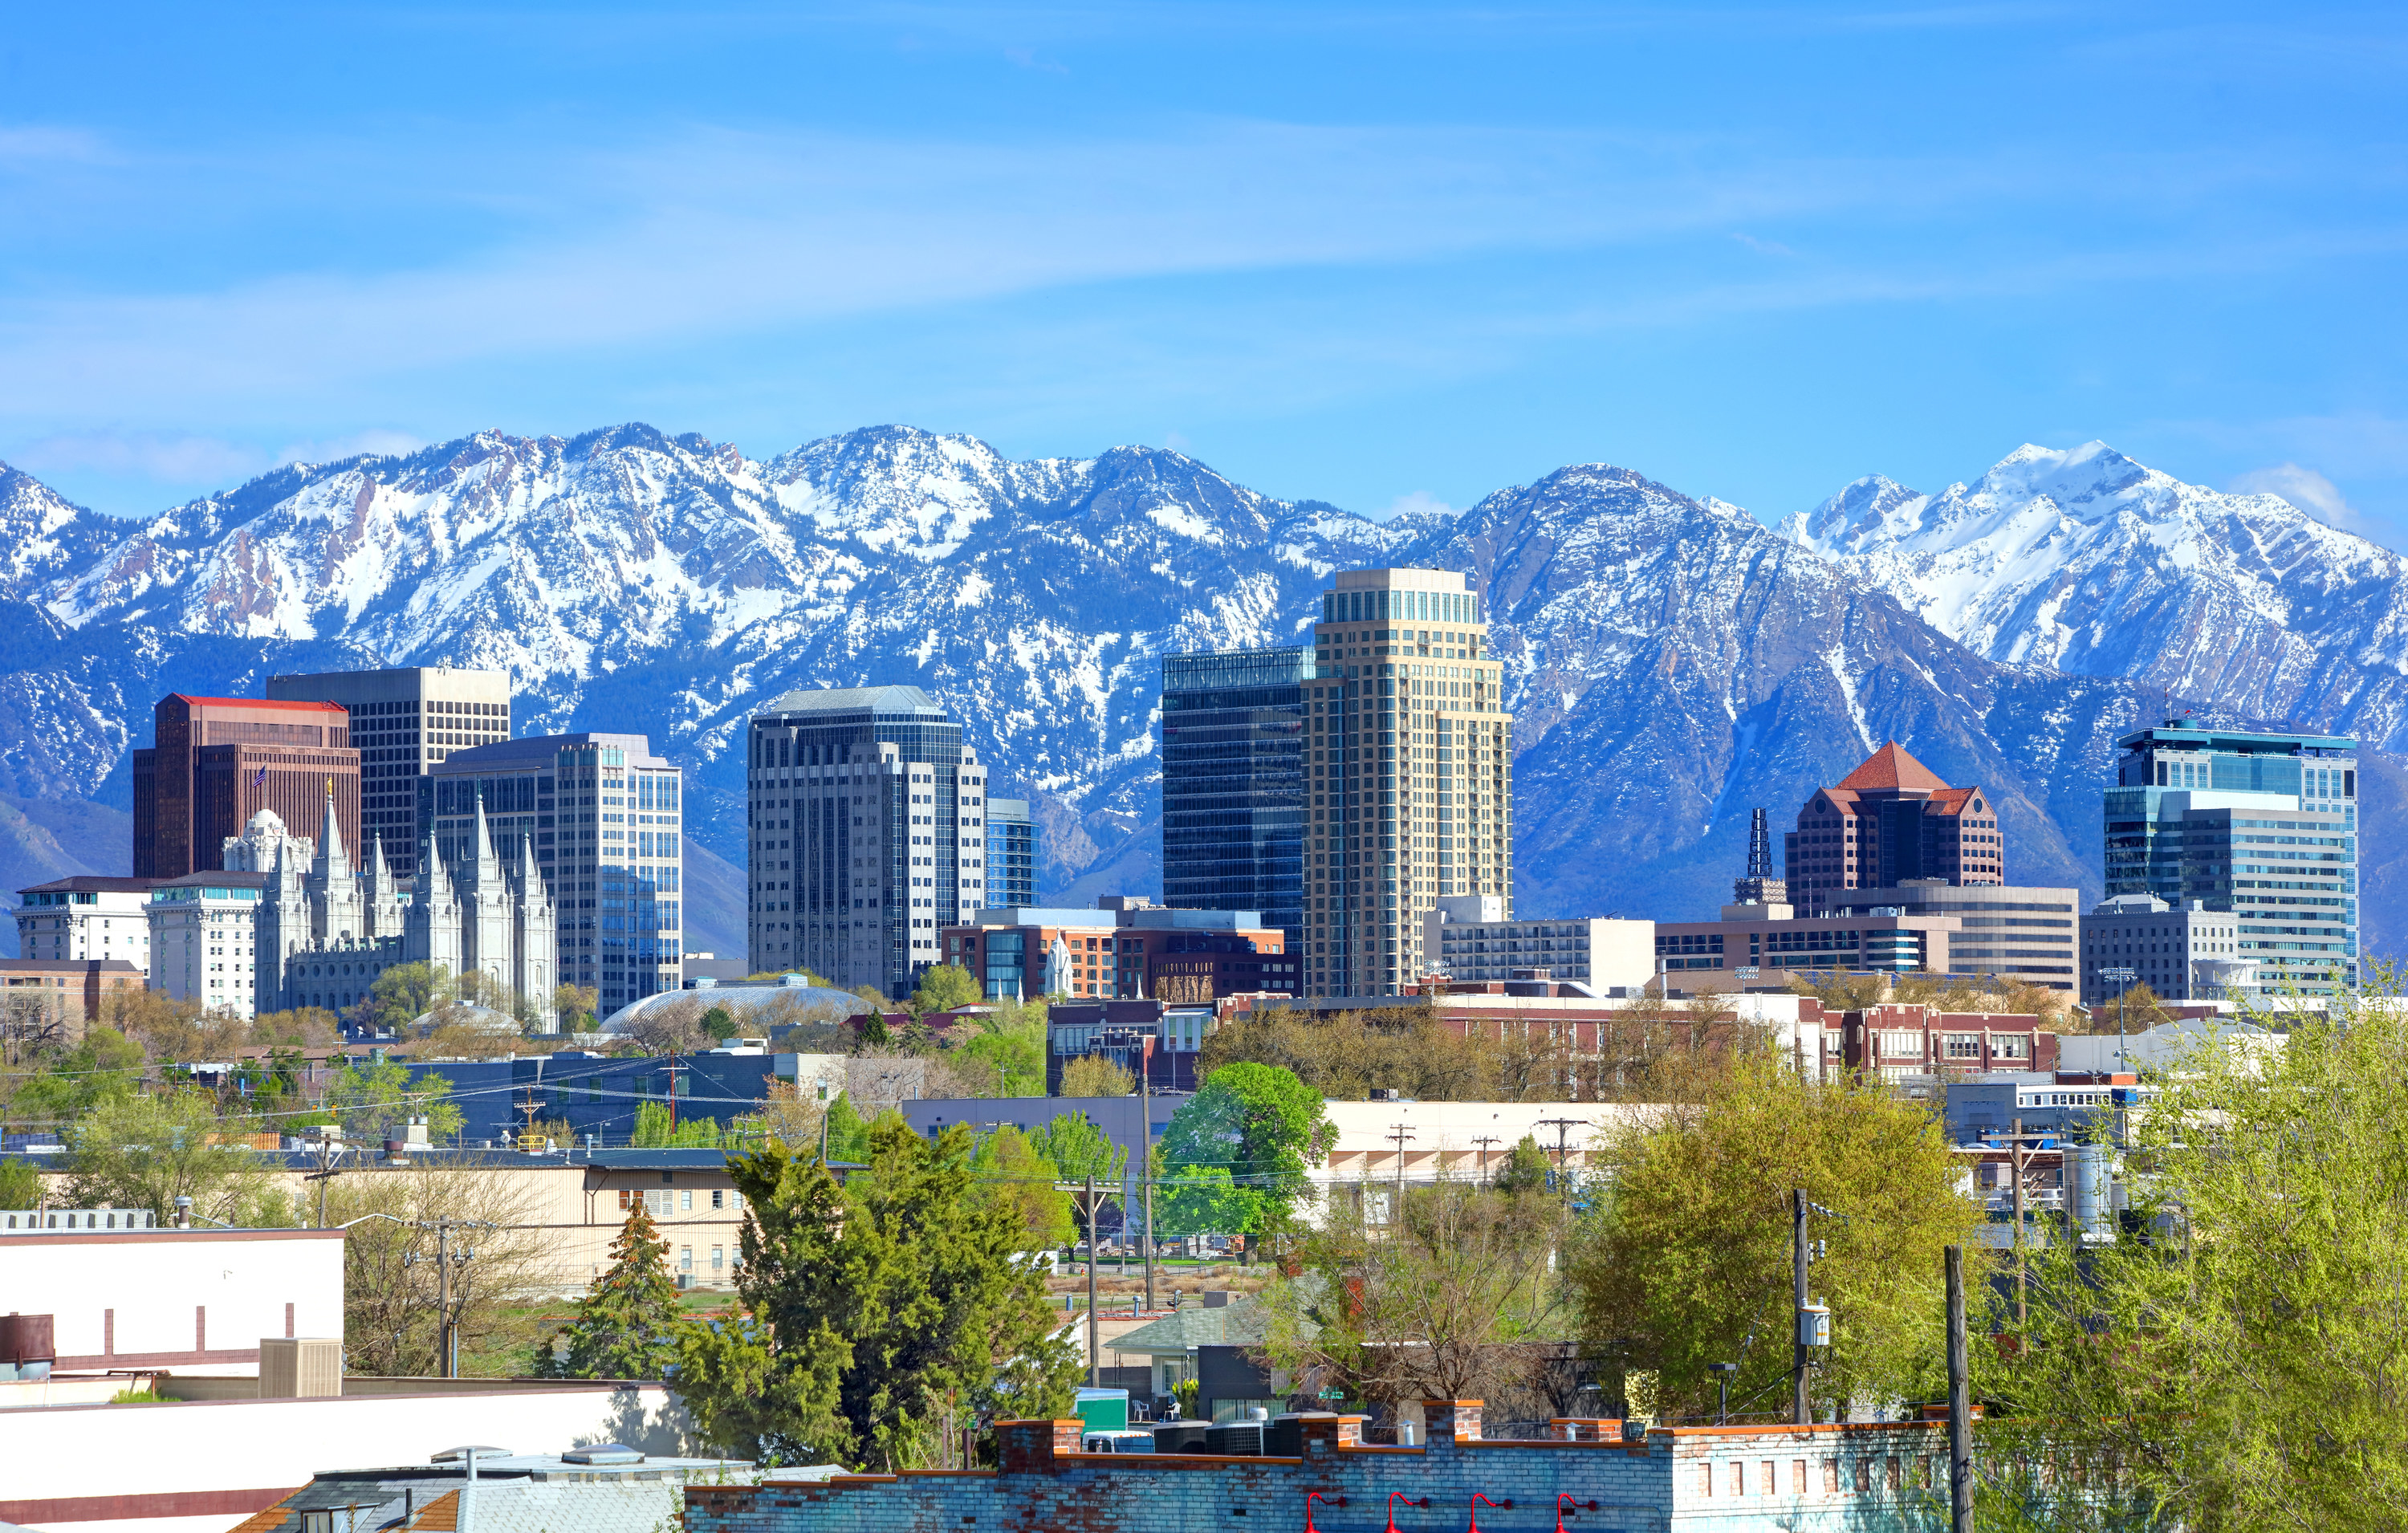 View of Salt Lake City and the mountains from a distance